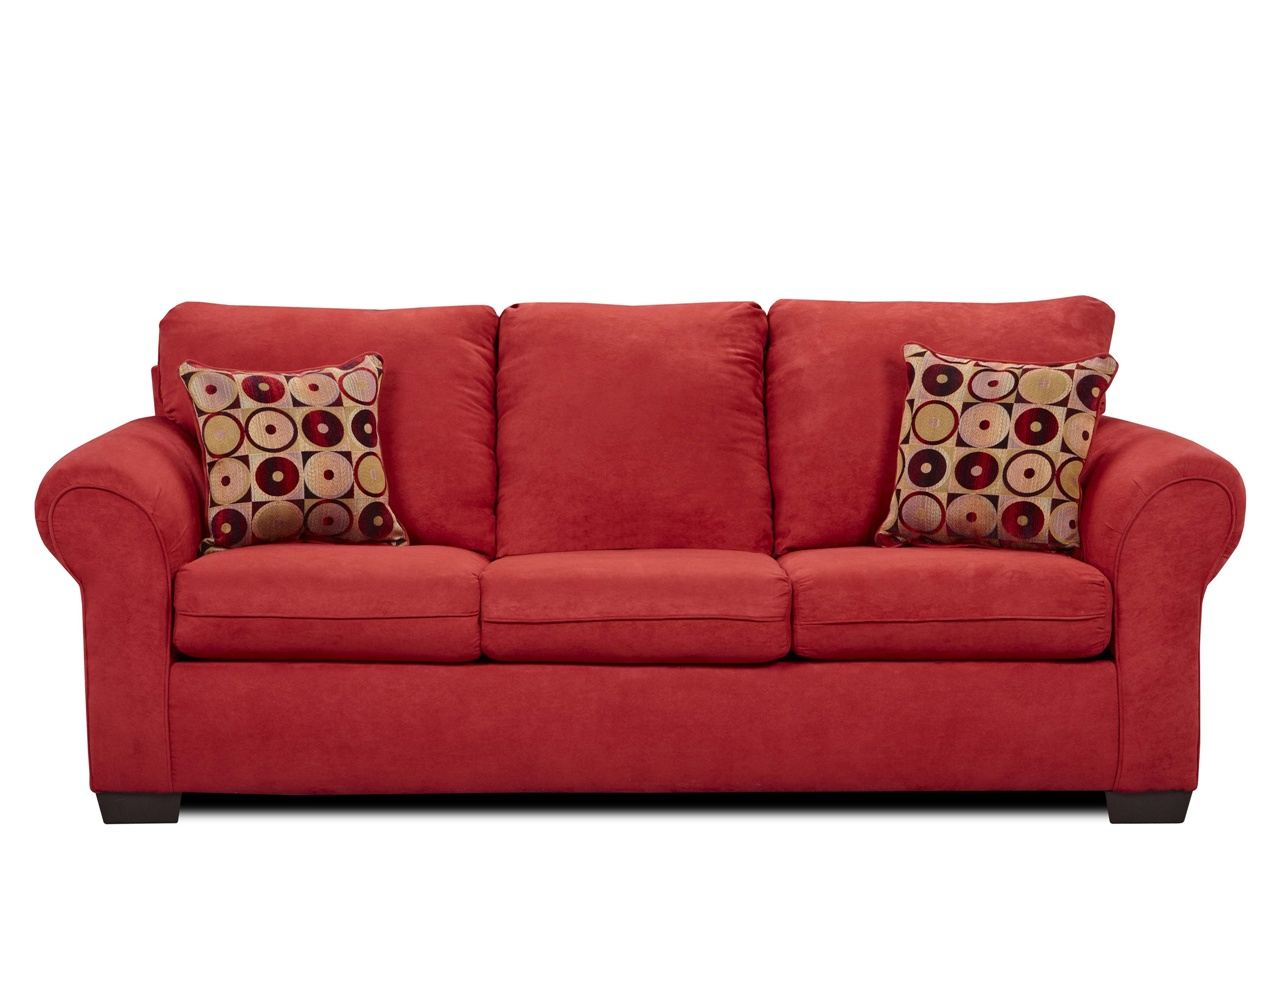 Cute cheapest couches available online couch sofa ideas interior design Discount sofa loveseat